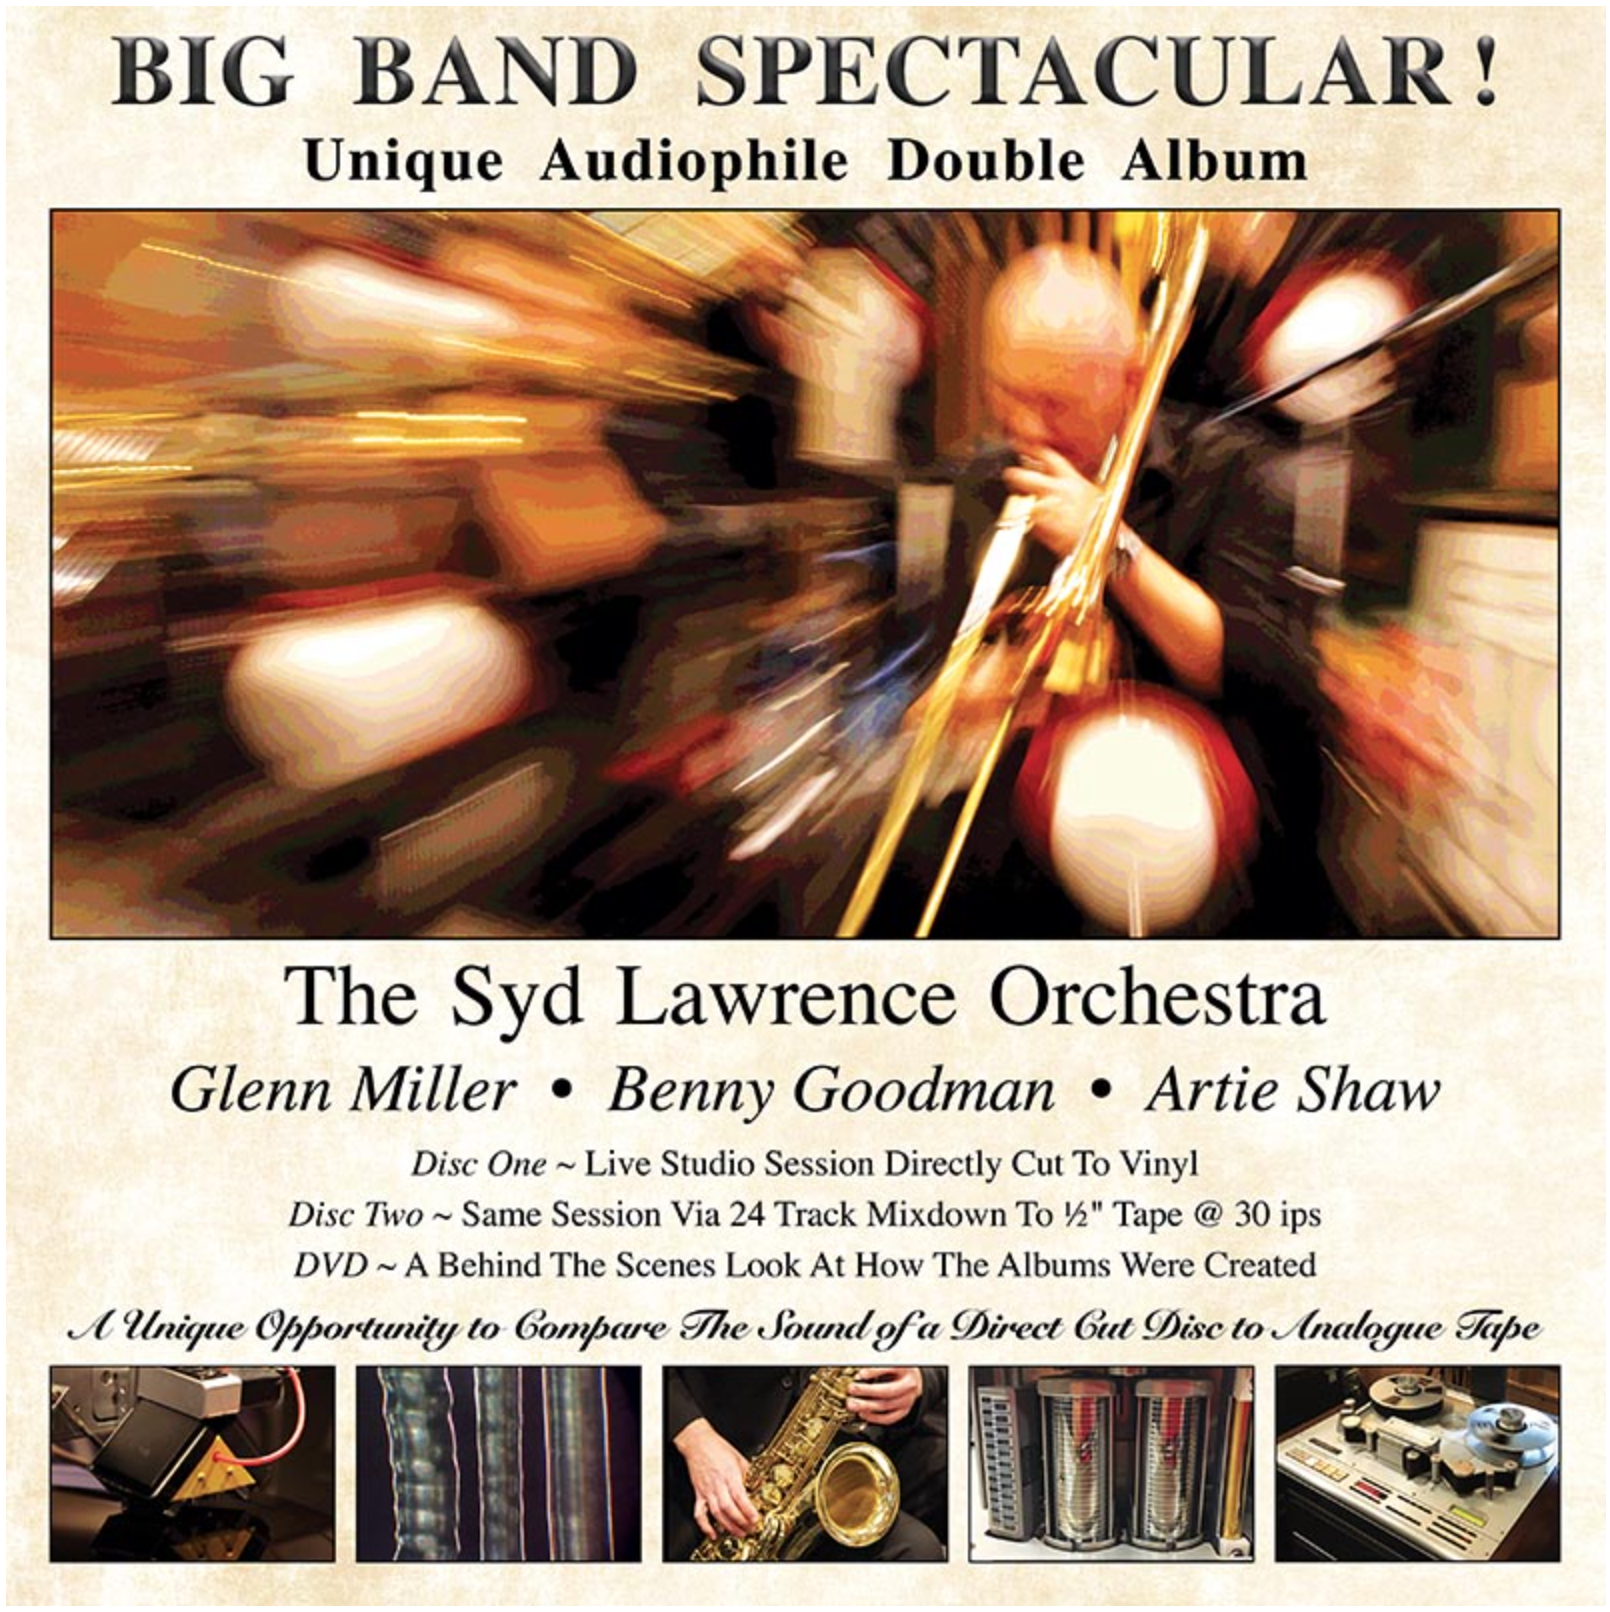 http://www.tron-electric.co.uk/wp-content/uploads/2015/11/Big-Band-Jazz-LP.png